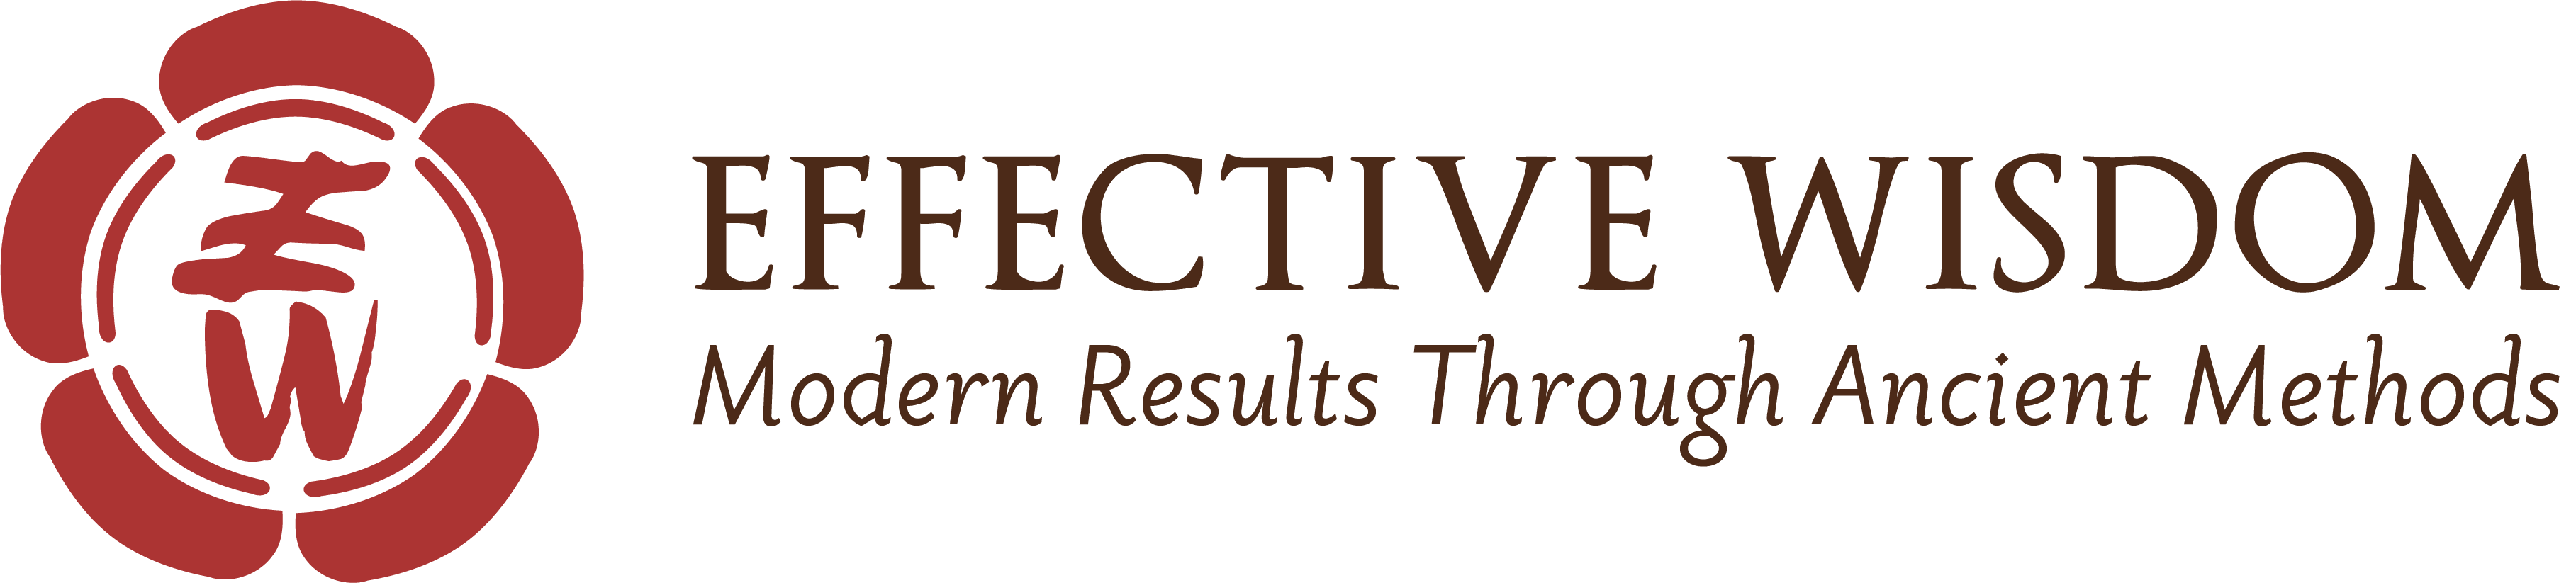 Effective Wisdom - Acupuncture in Richmond, VA